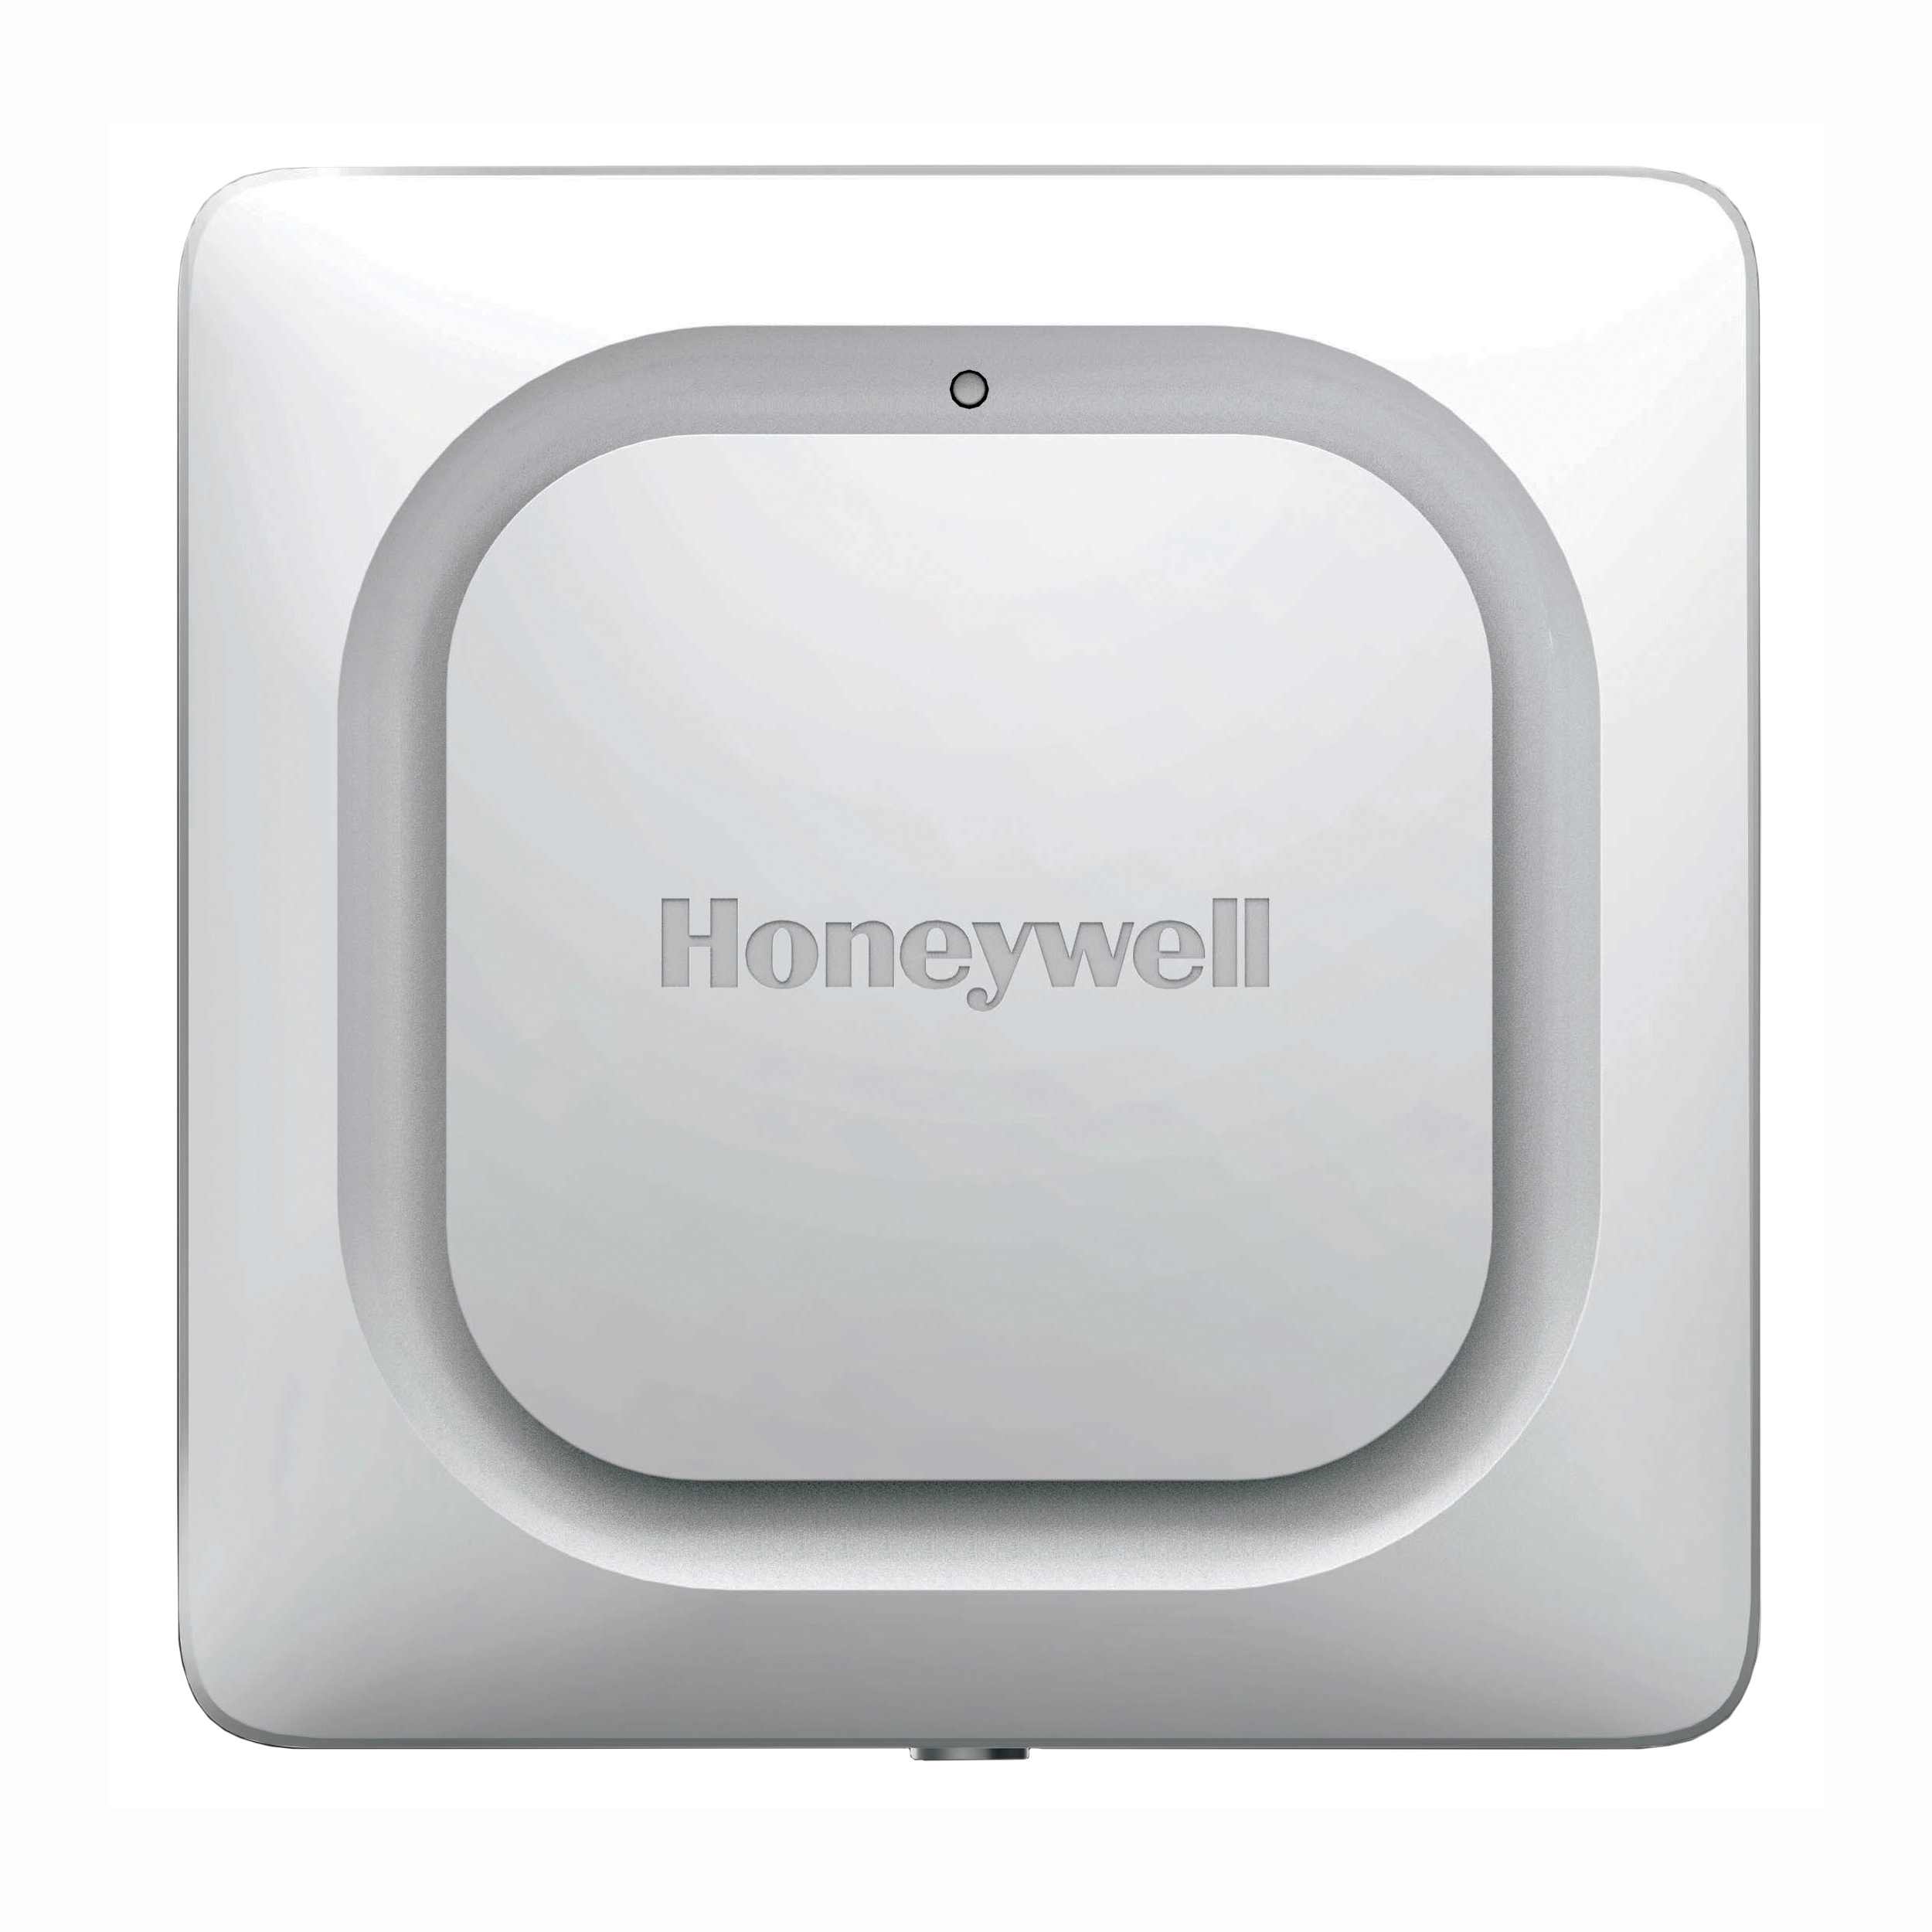 Picture of Honeywell RCHWF3610WF100/N Wi-Fi Water Leak and Freeze Detector, Alarm: Buzzer, 100 dBA, Wall Mounting